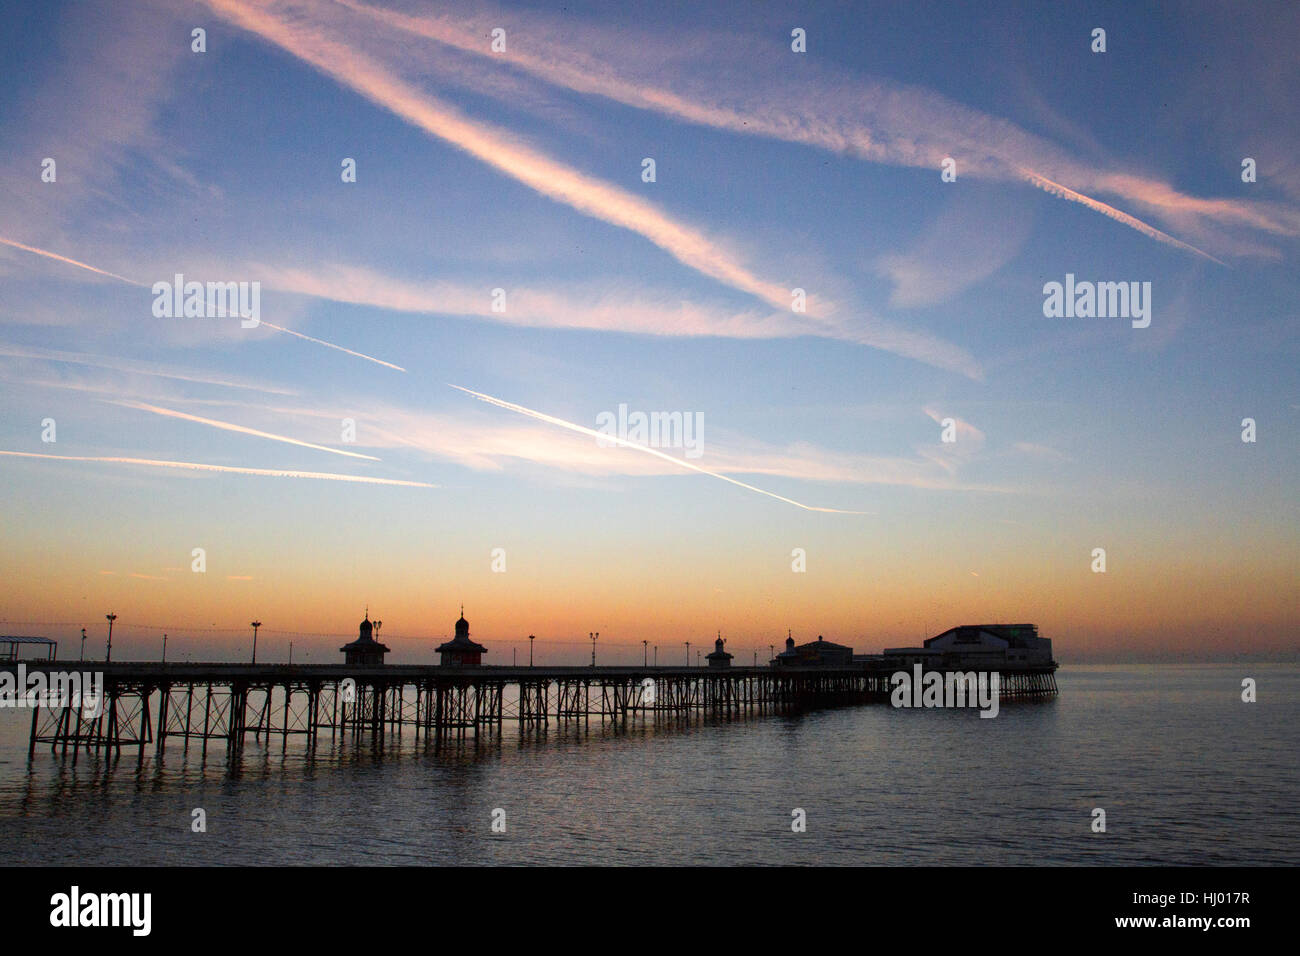 Blackpools North Pier, a Victorian structure and landmark, Lancashire, UK - Stock Image